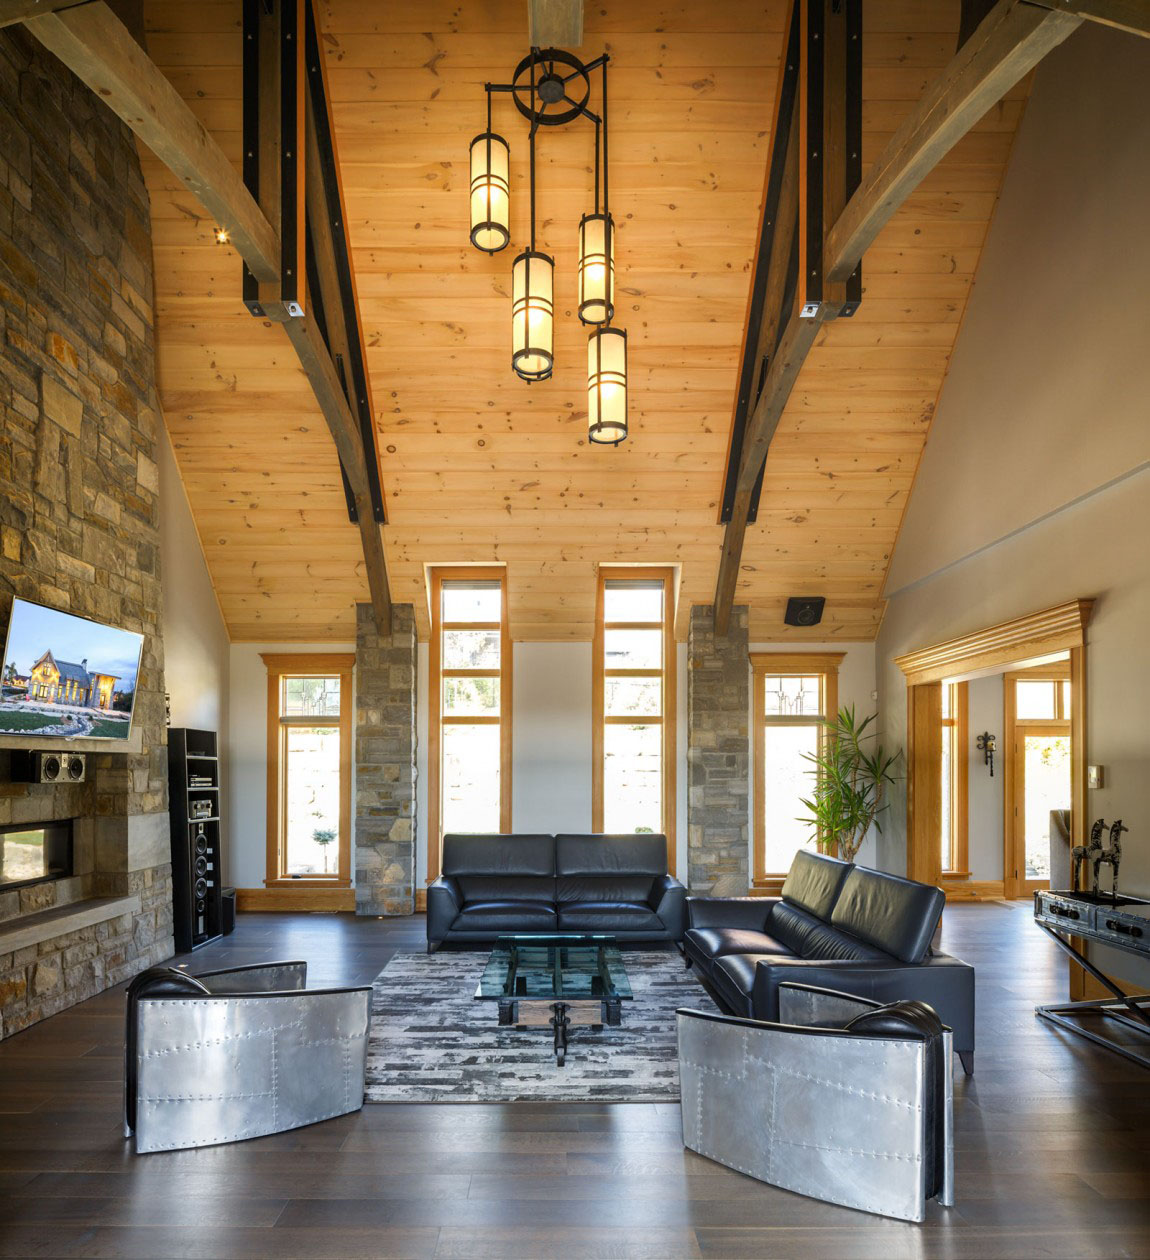 Contemporary Home Design: Rustic Contemporary Mountain Style Home With Innovative